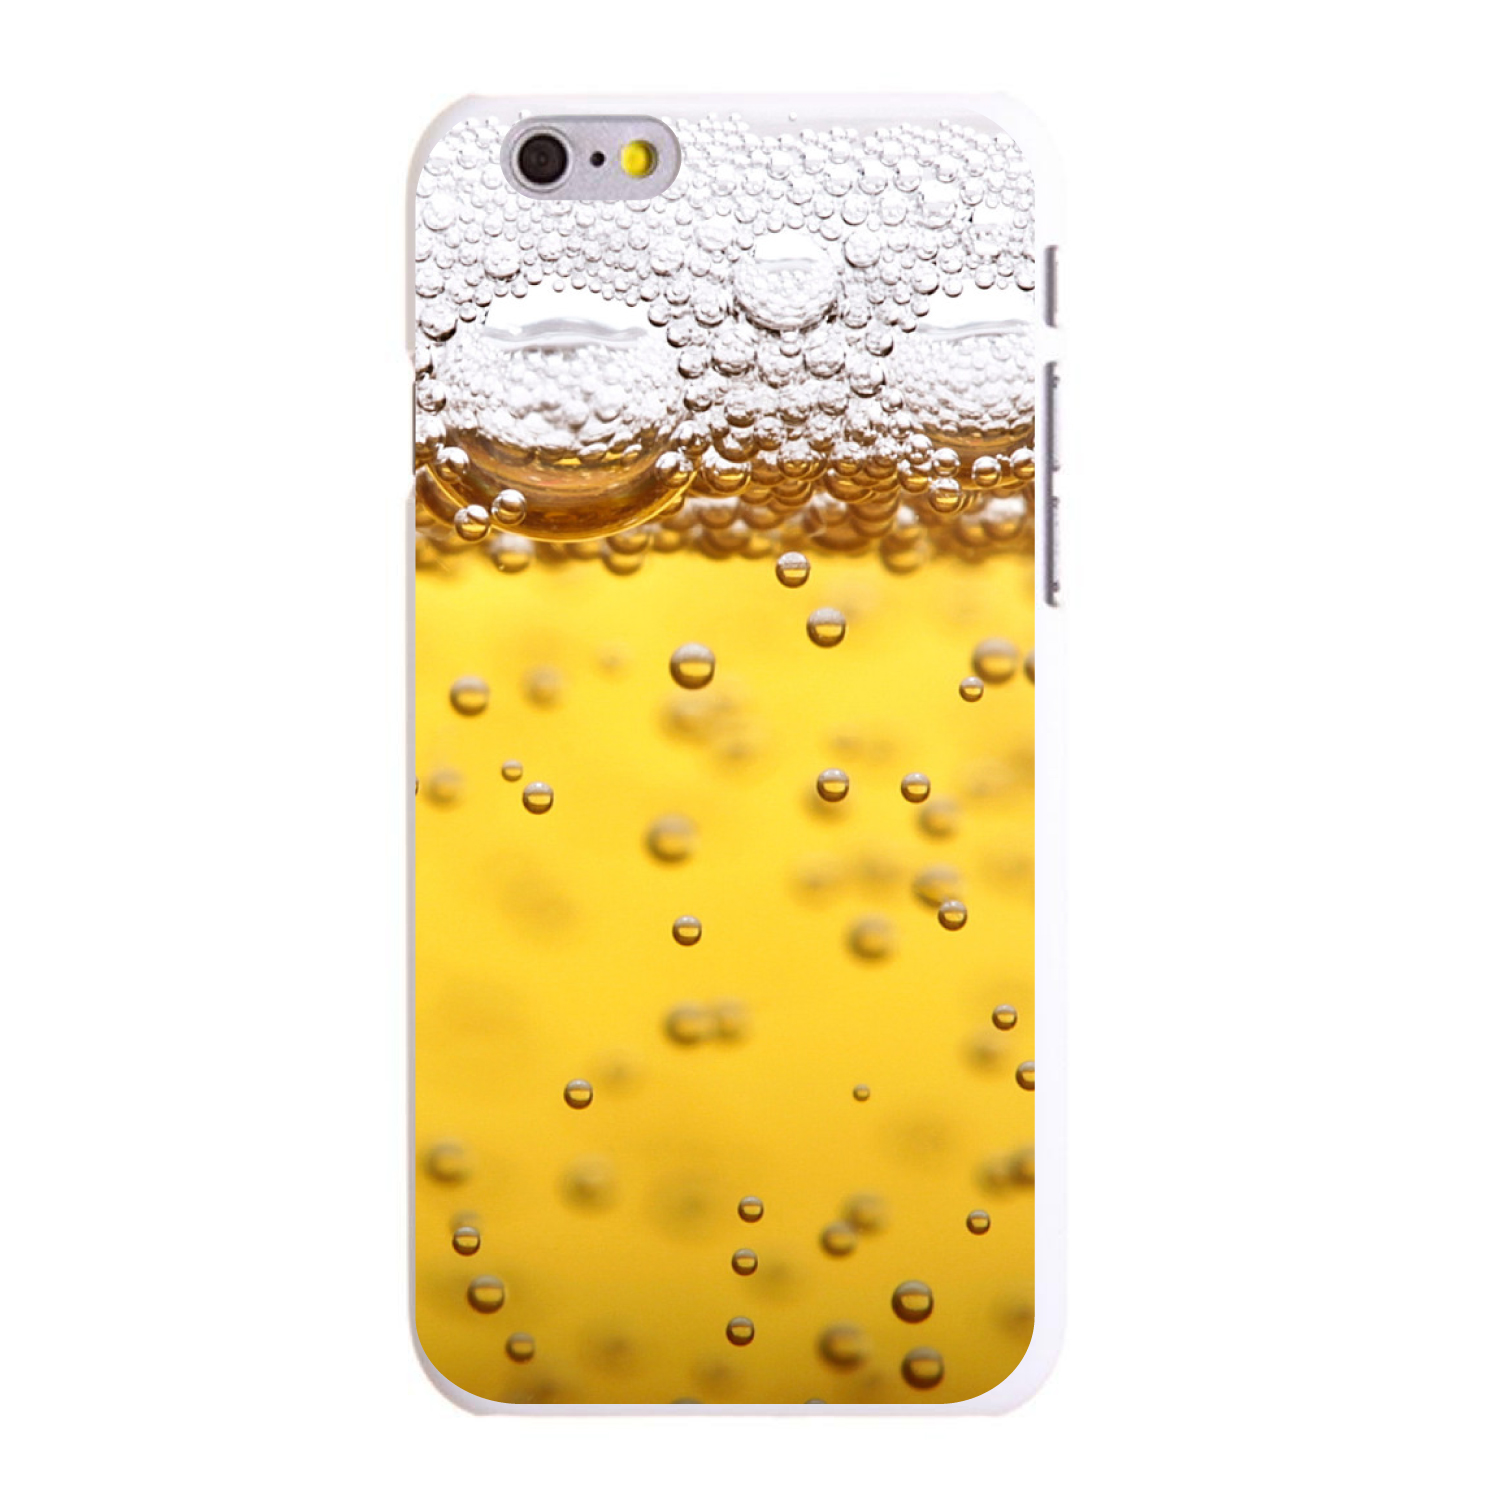 "CUSTOM White Hard Plastic Snap-On Case for Apple iPhone 6 / 6S (4.7"" Screen) - Beer Glass Foam Bubbles"